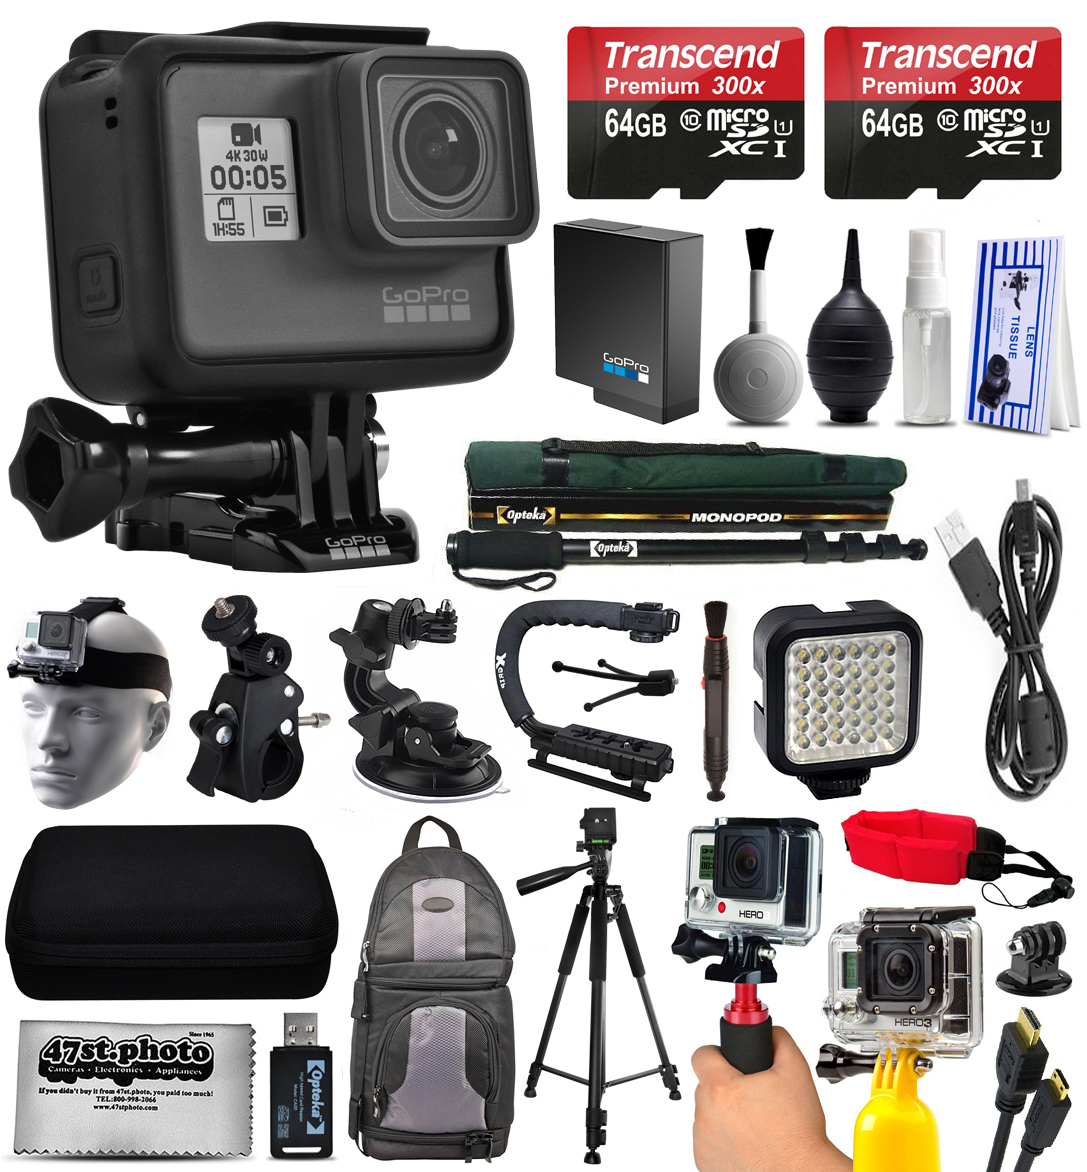 GoPro HERO5 Black Edition 4K Action Camera with 2x Micro SD Cards, Charger, Card Reader, Backpack, Helmet Strap